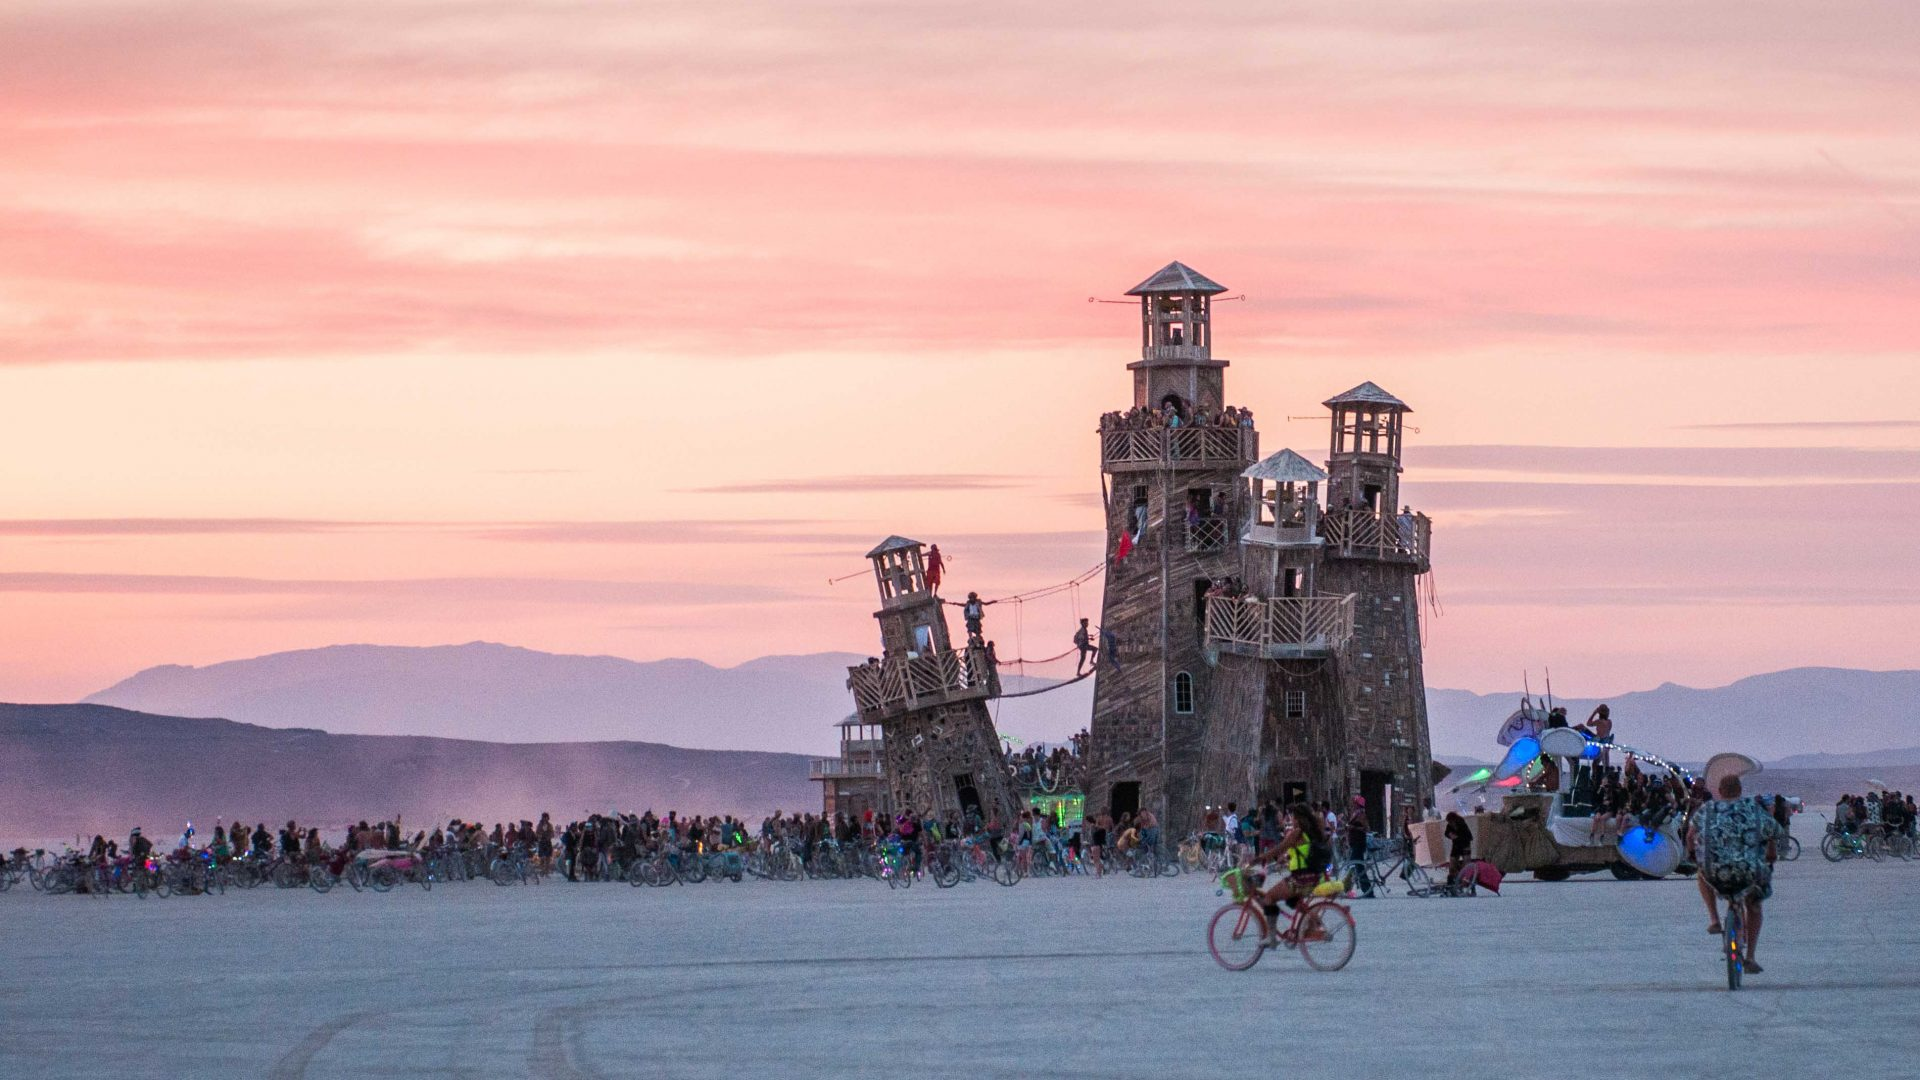 One of the art installations stands out against the sunset at Burning Man.